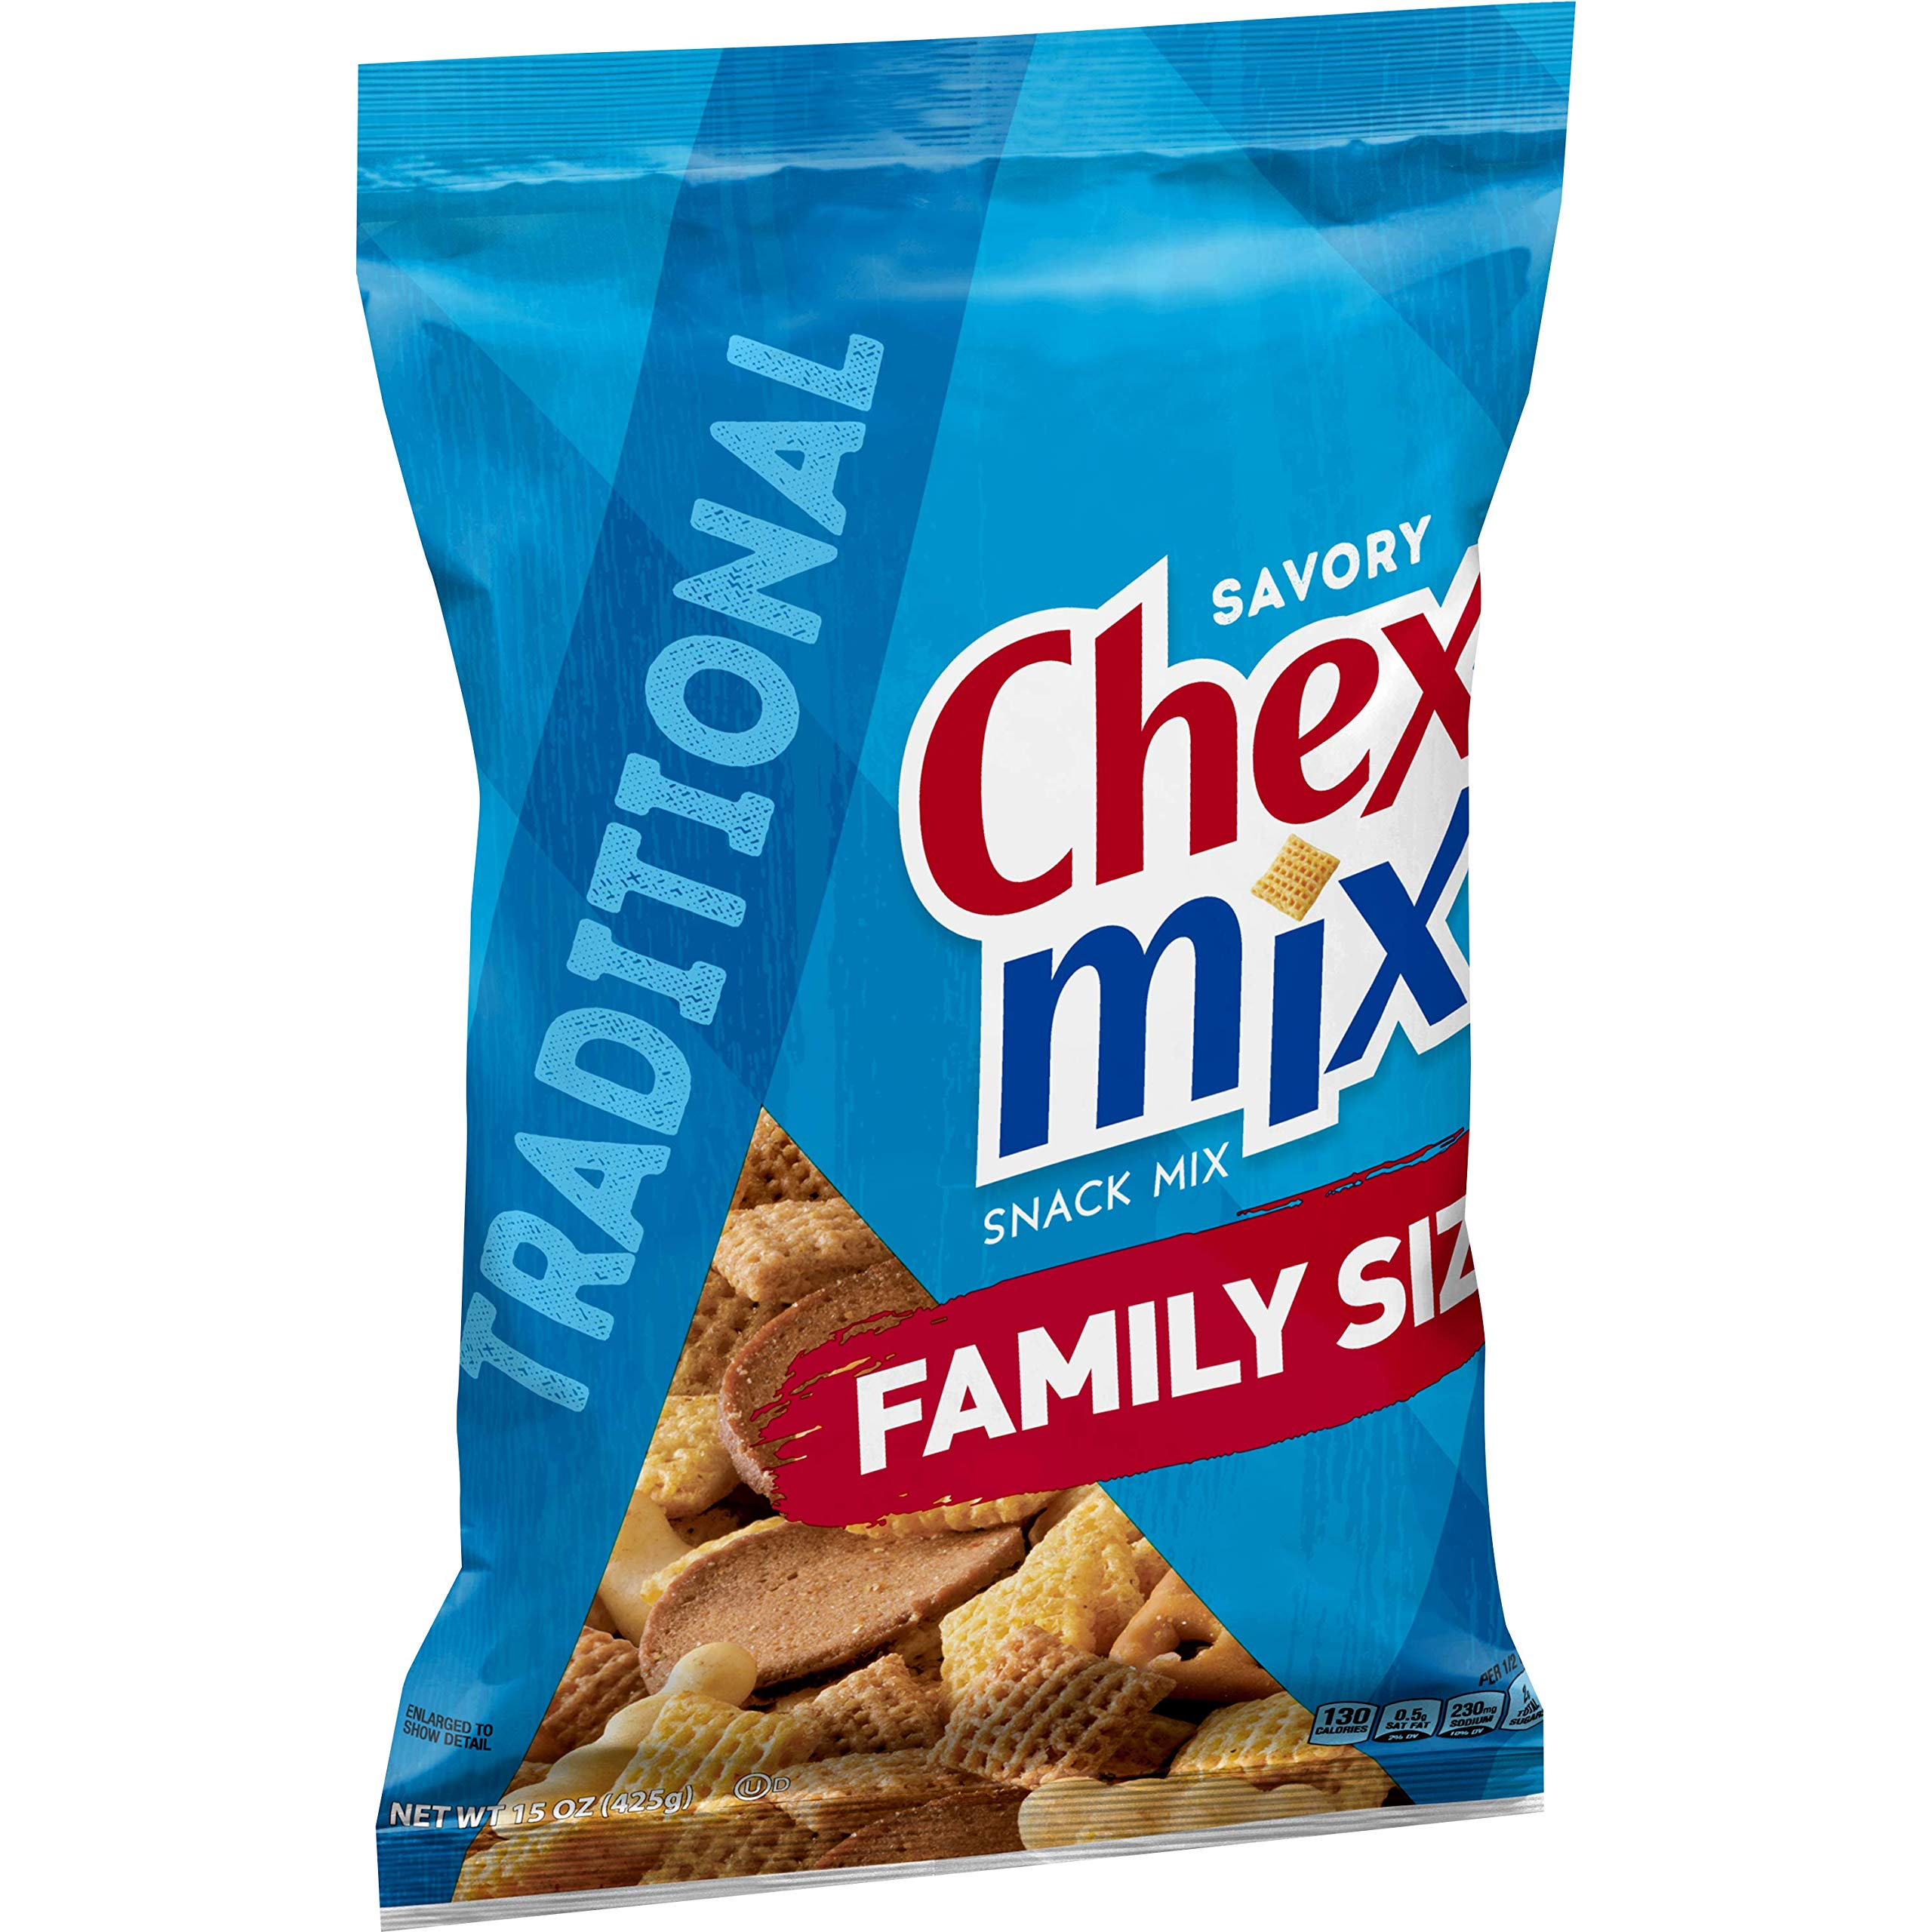 Chex Mix Traditional Savory Snack Mix 15 oz